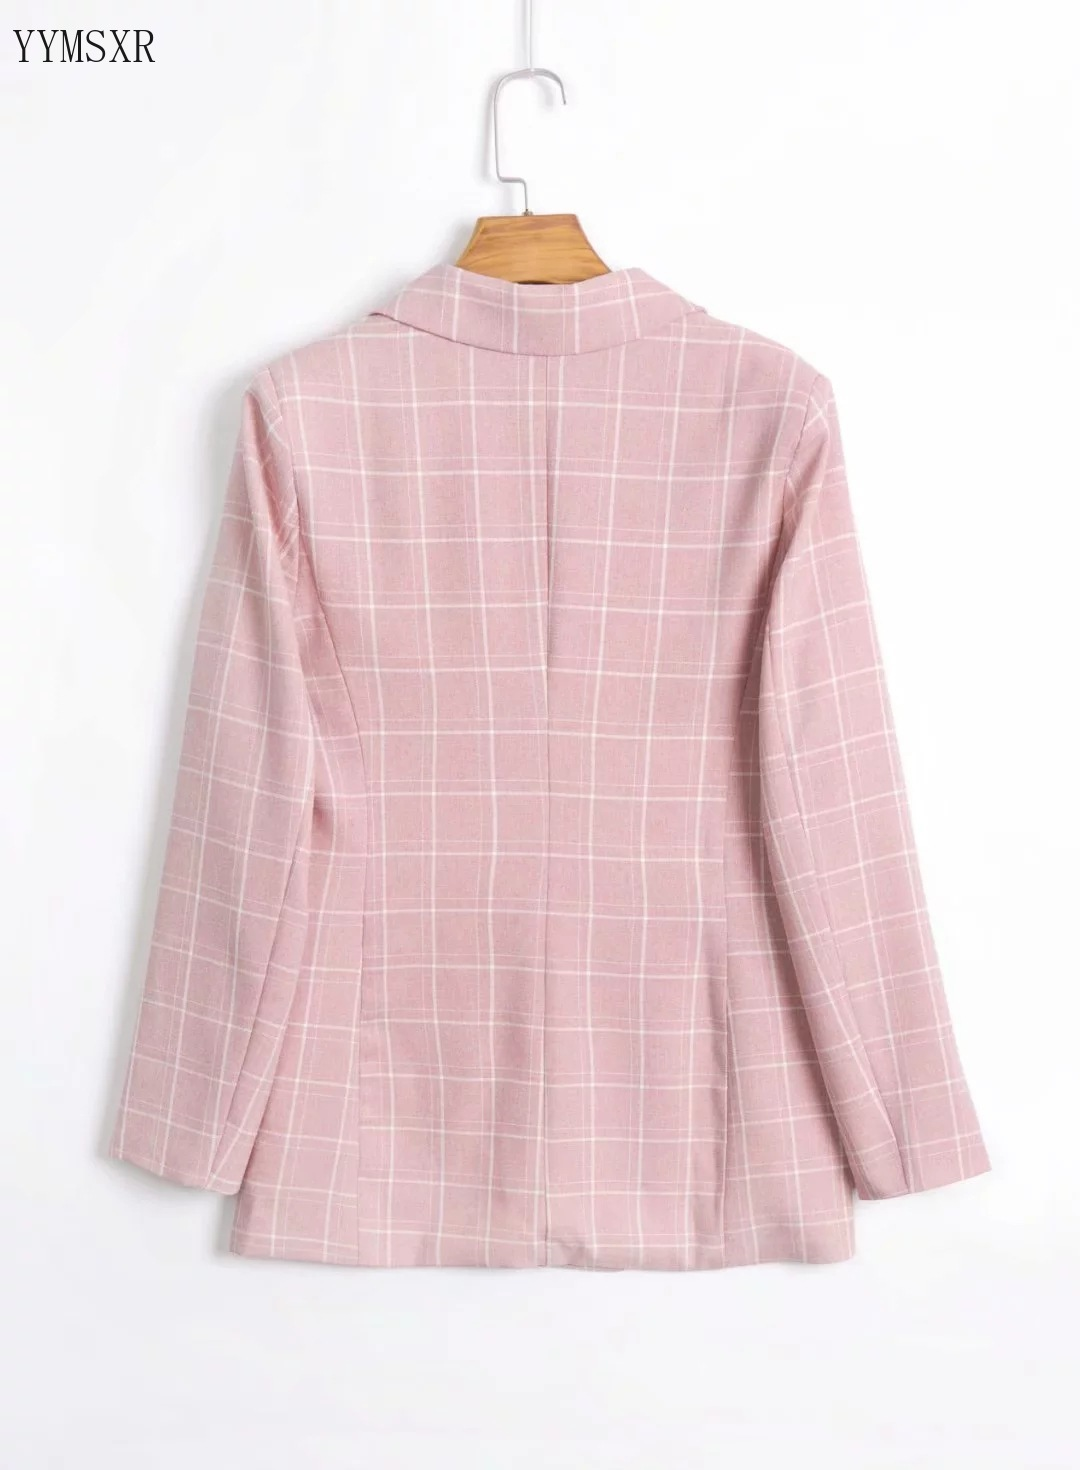 Casual Women's Pink Plaid Jacket Feminine 2020 new autumn loose mid-length women's blazer Fashion small suit double breasted